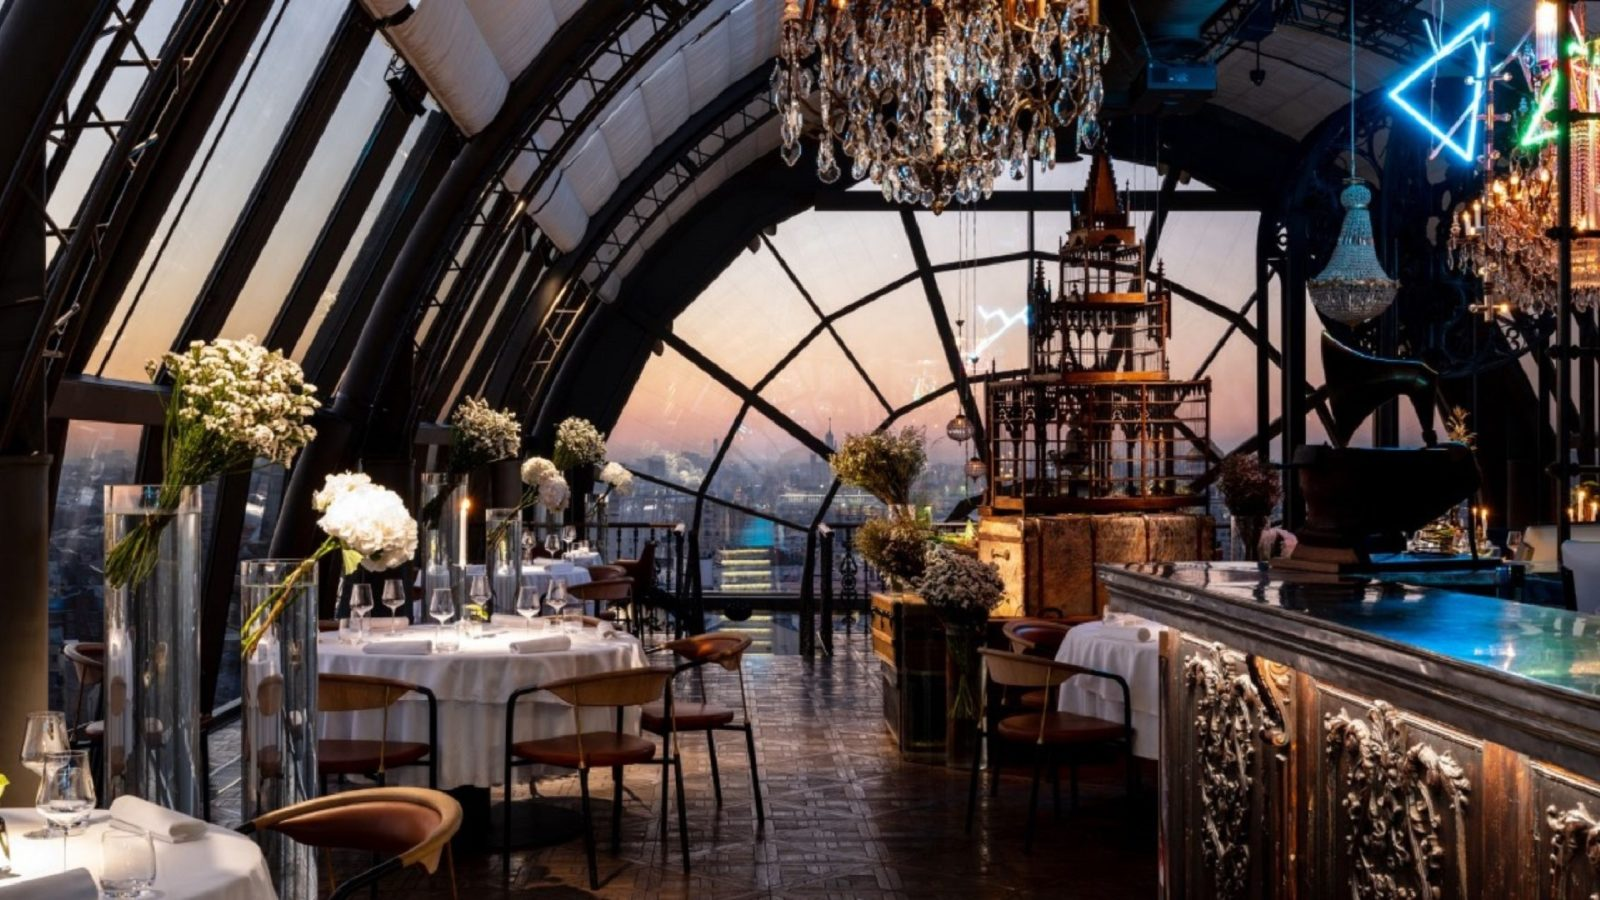 Restaurants with the most beautiful design and architecture